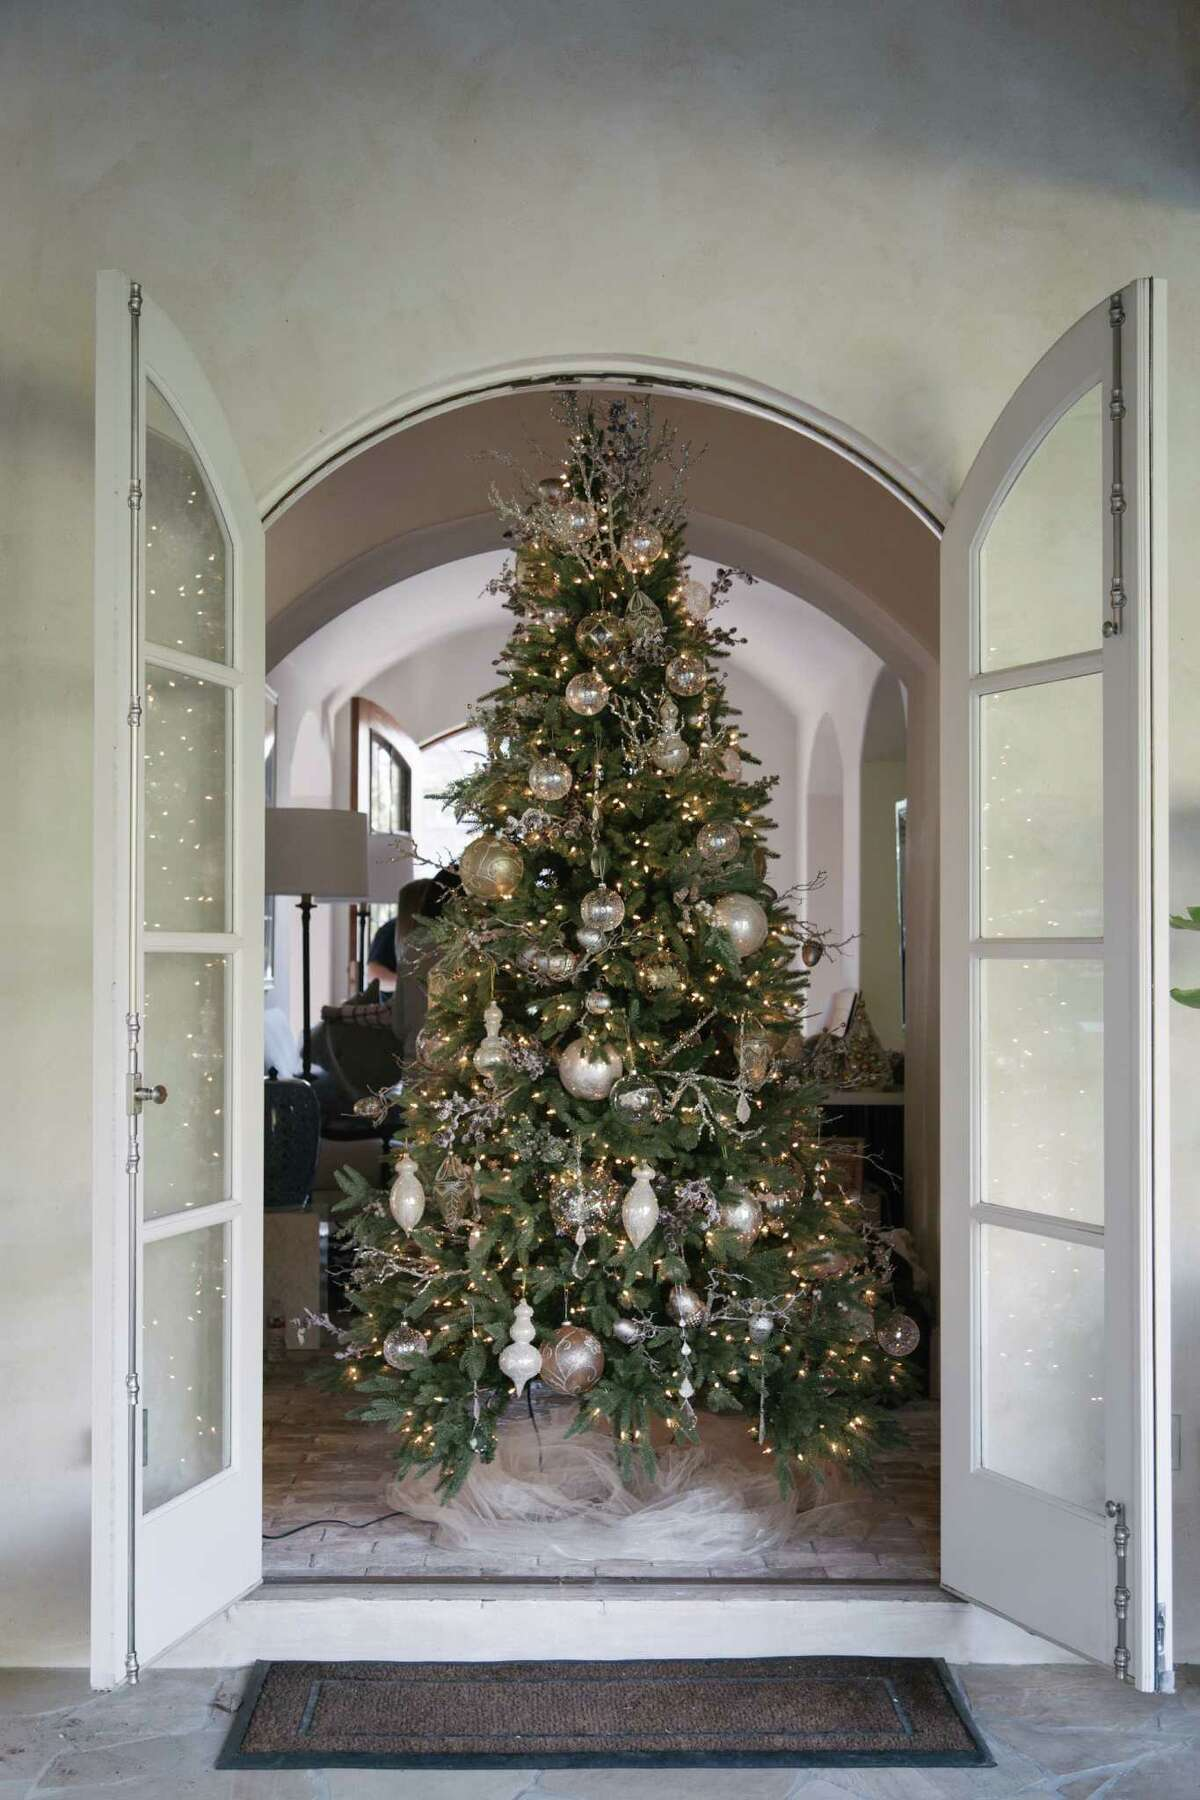 A nine-foot tree welcomes guests to the D'Antoni home.